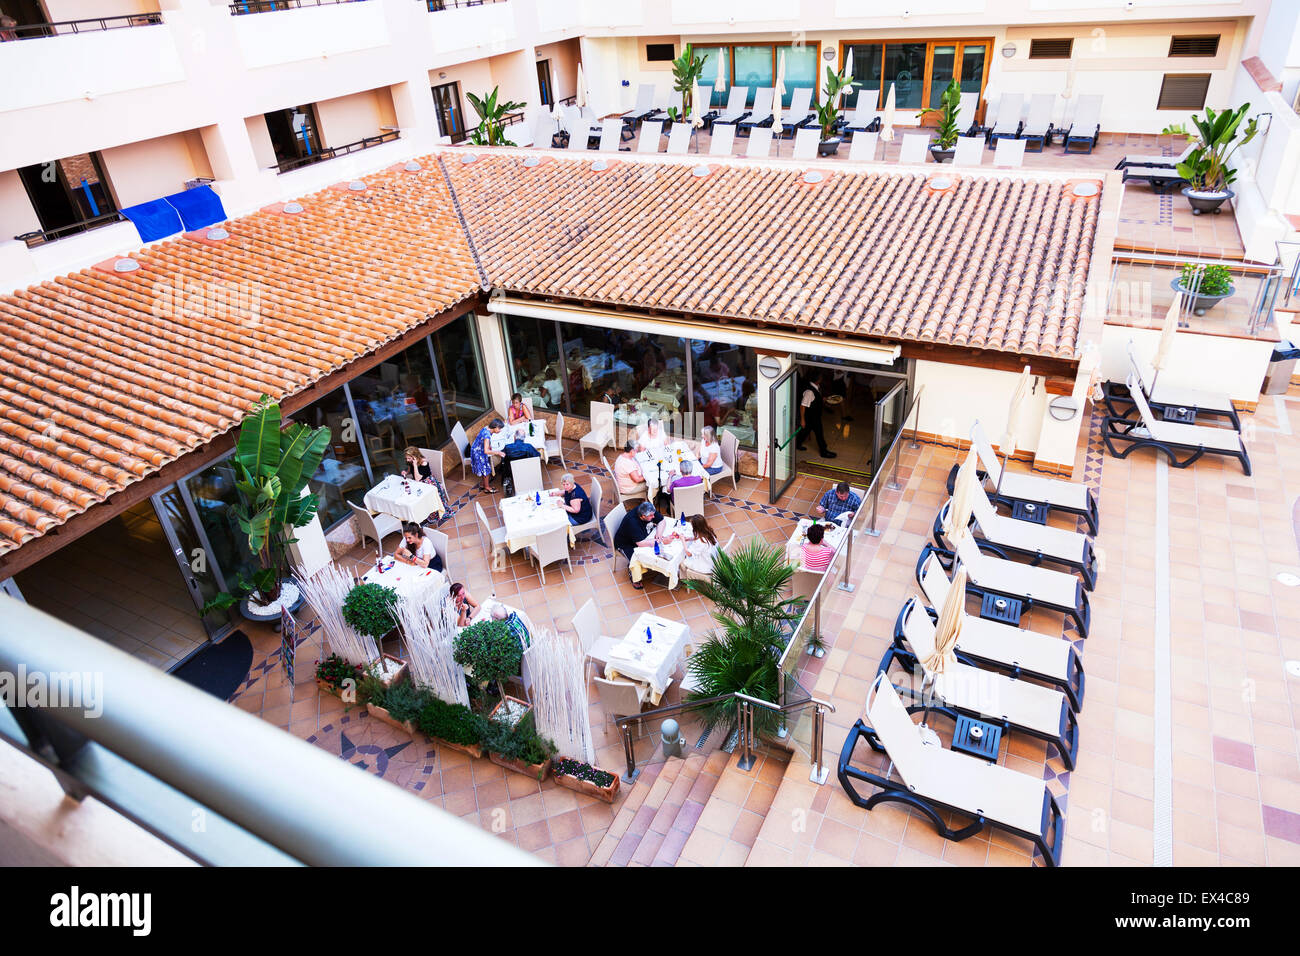 Hotel dining al fresco outside eating area diners sat at tables for lunch - Stock Image